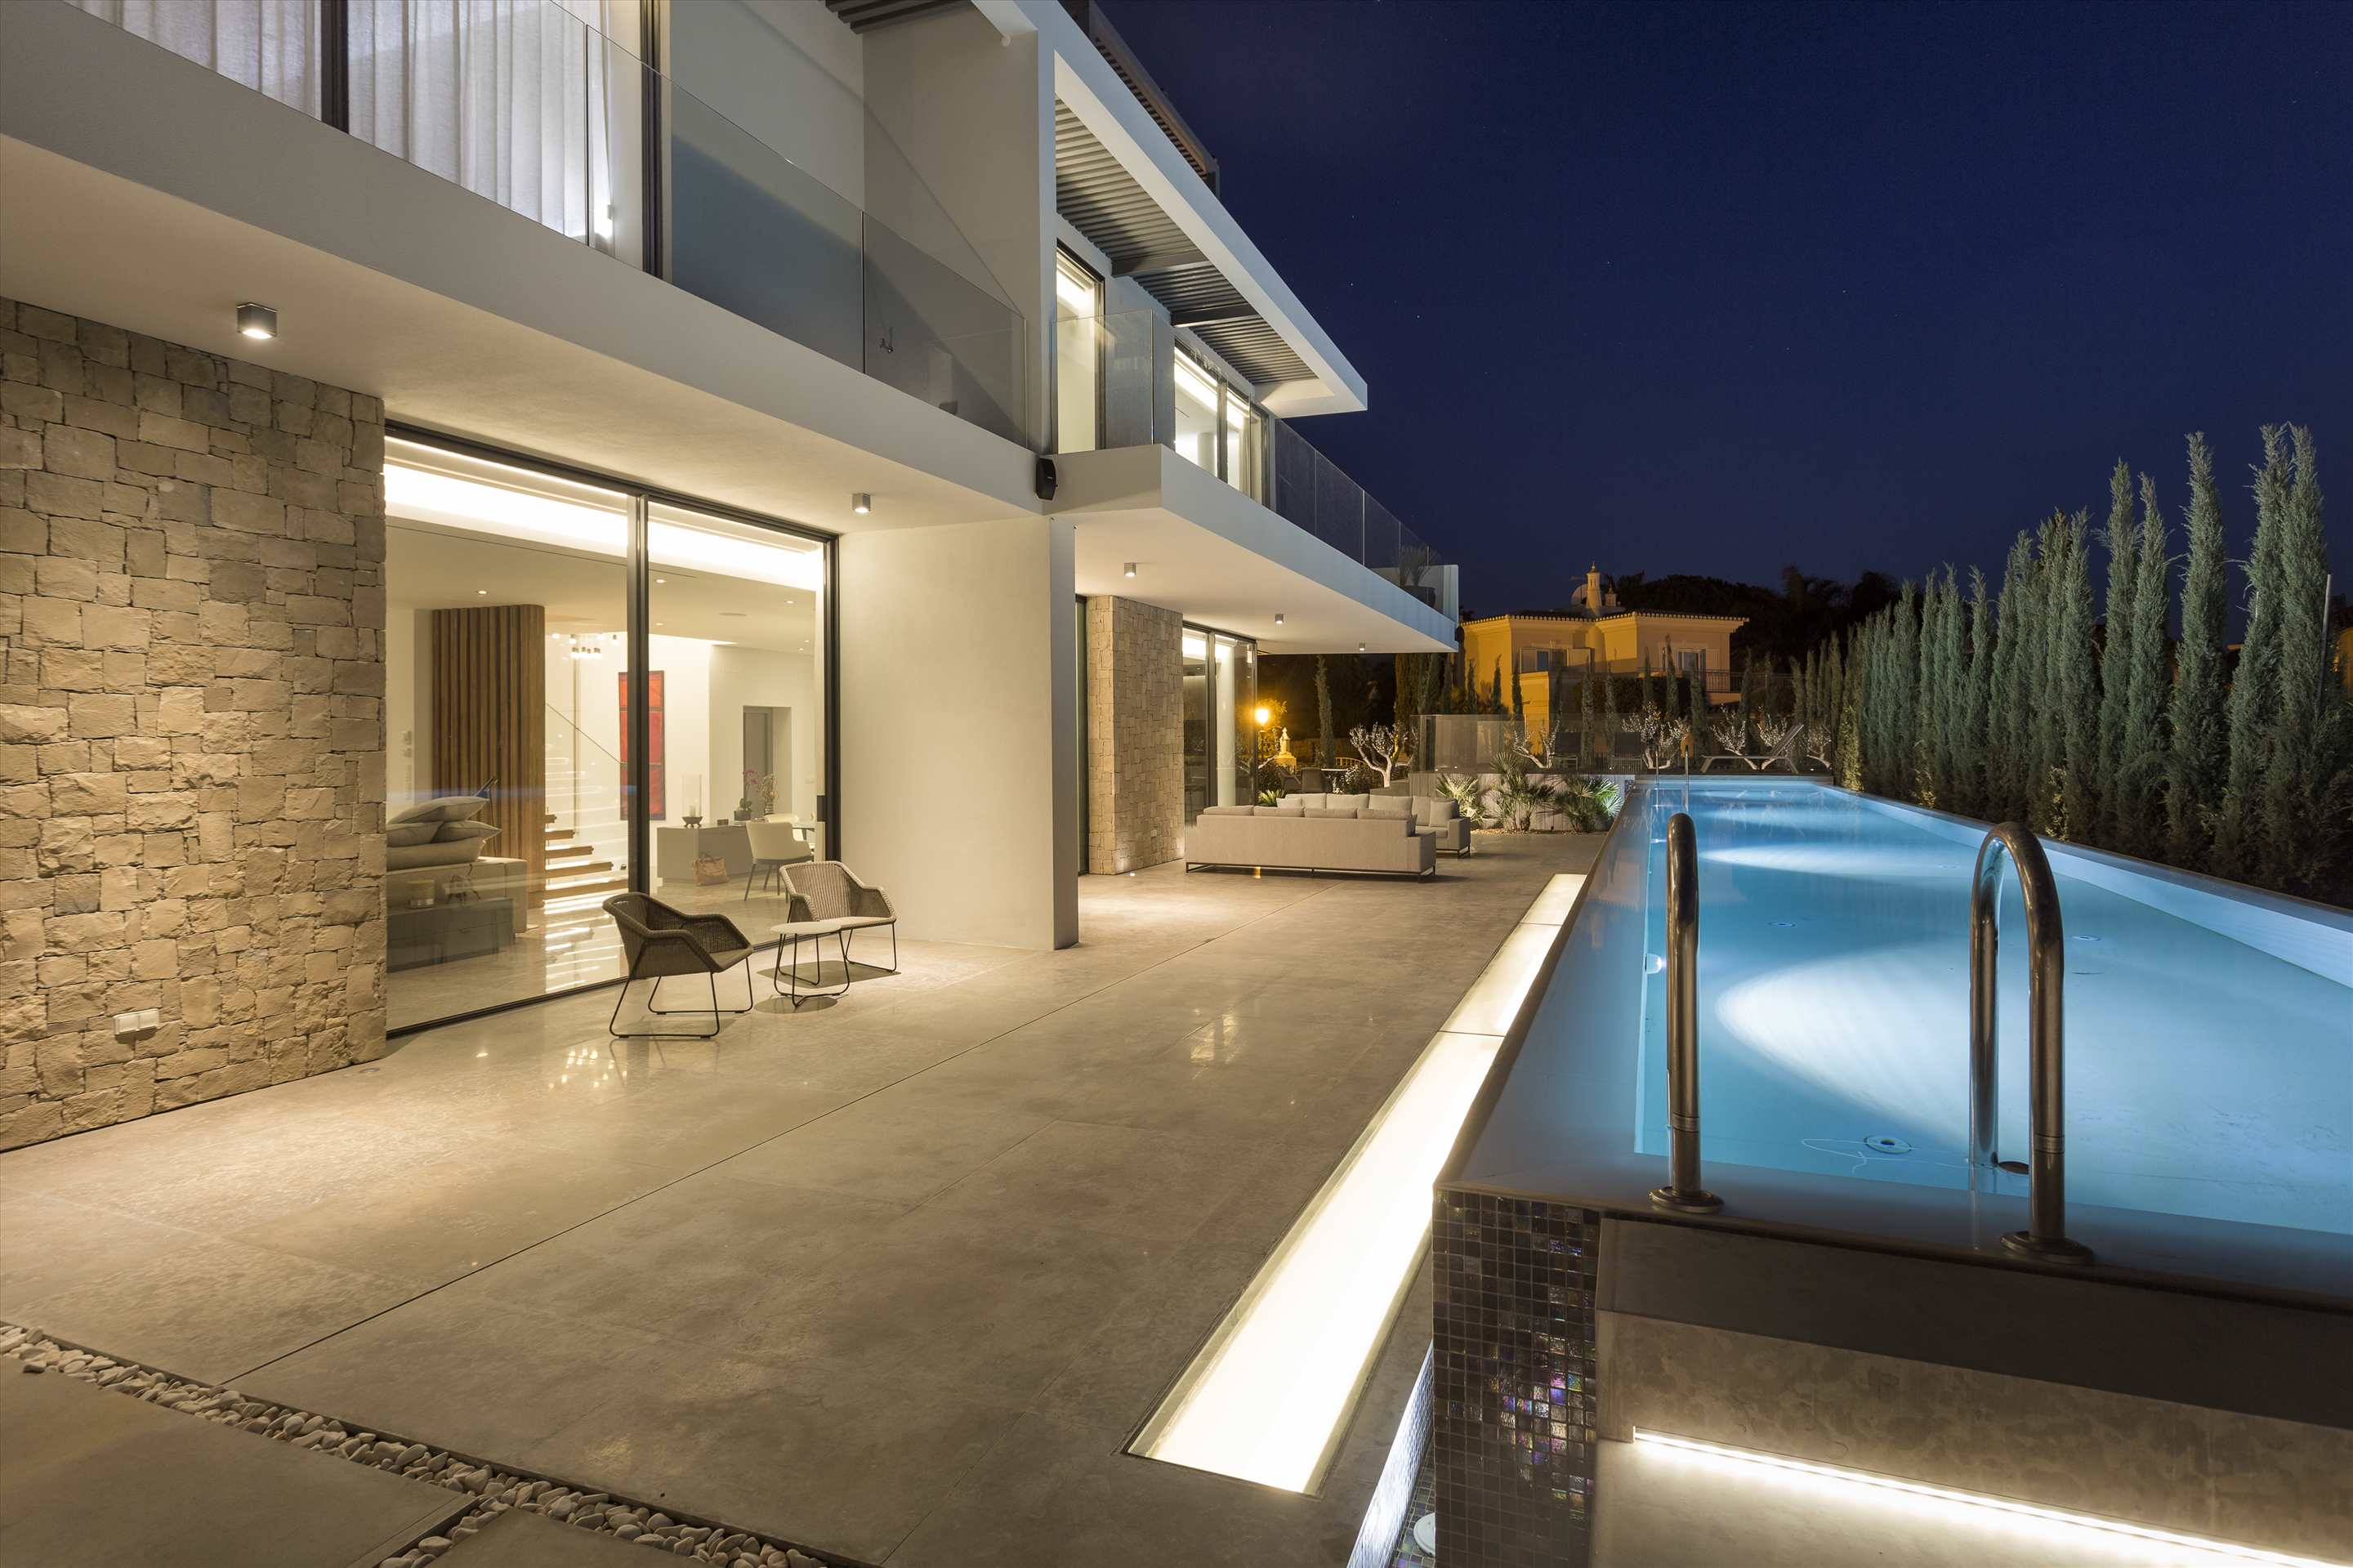 Villa Syrah, 5 bedroom villa in Vale do Lobo, Algarve Photo #36